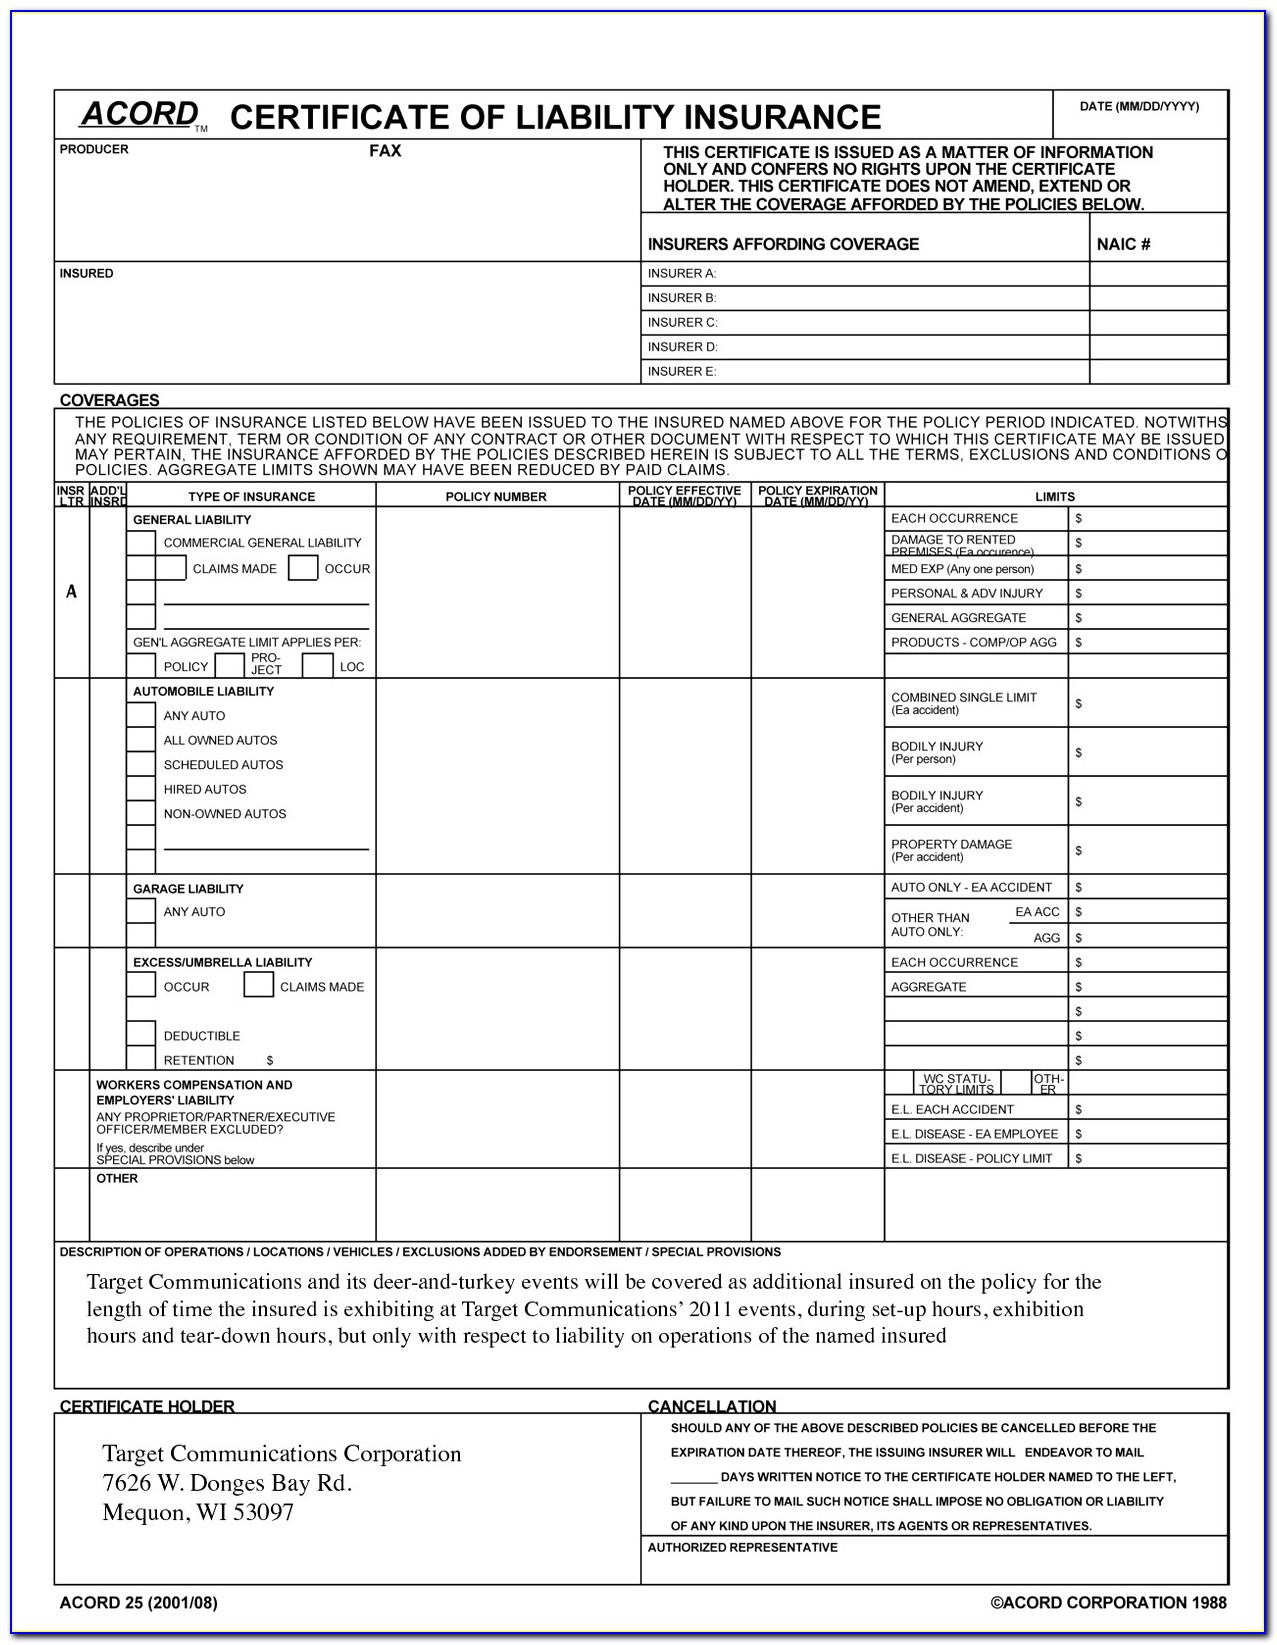 Acord Certificate Of Liability Insurance Template Top Certificate Liability Insurance Form Template Best Acord